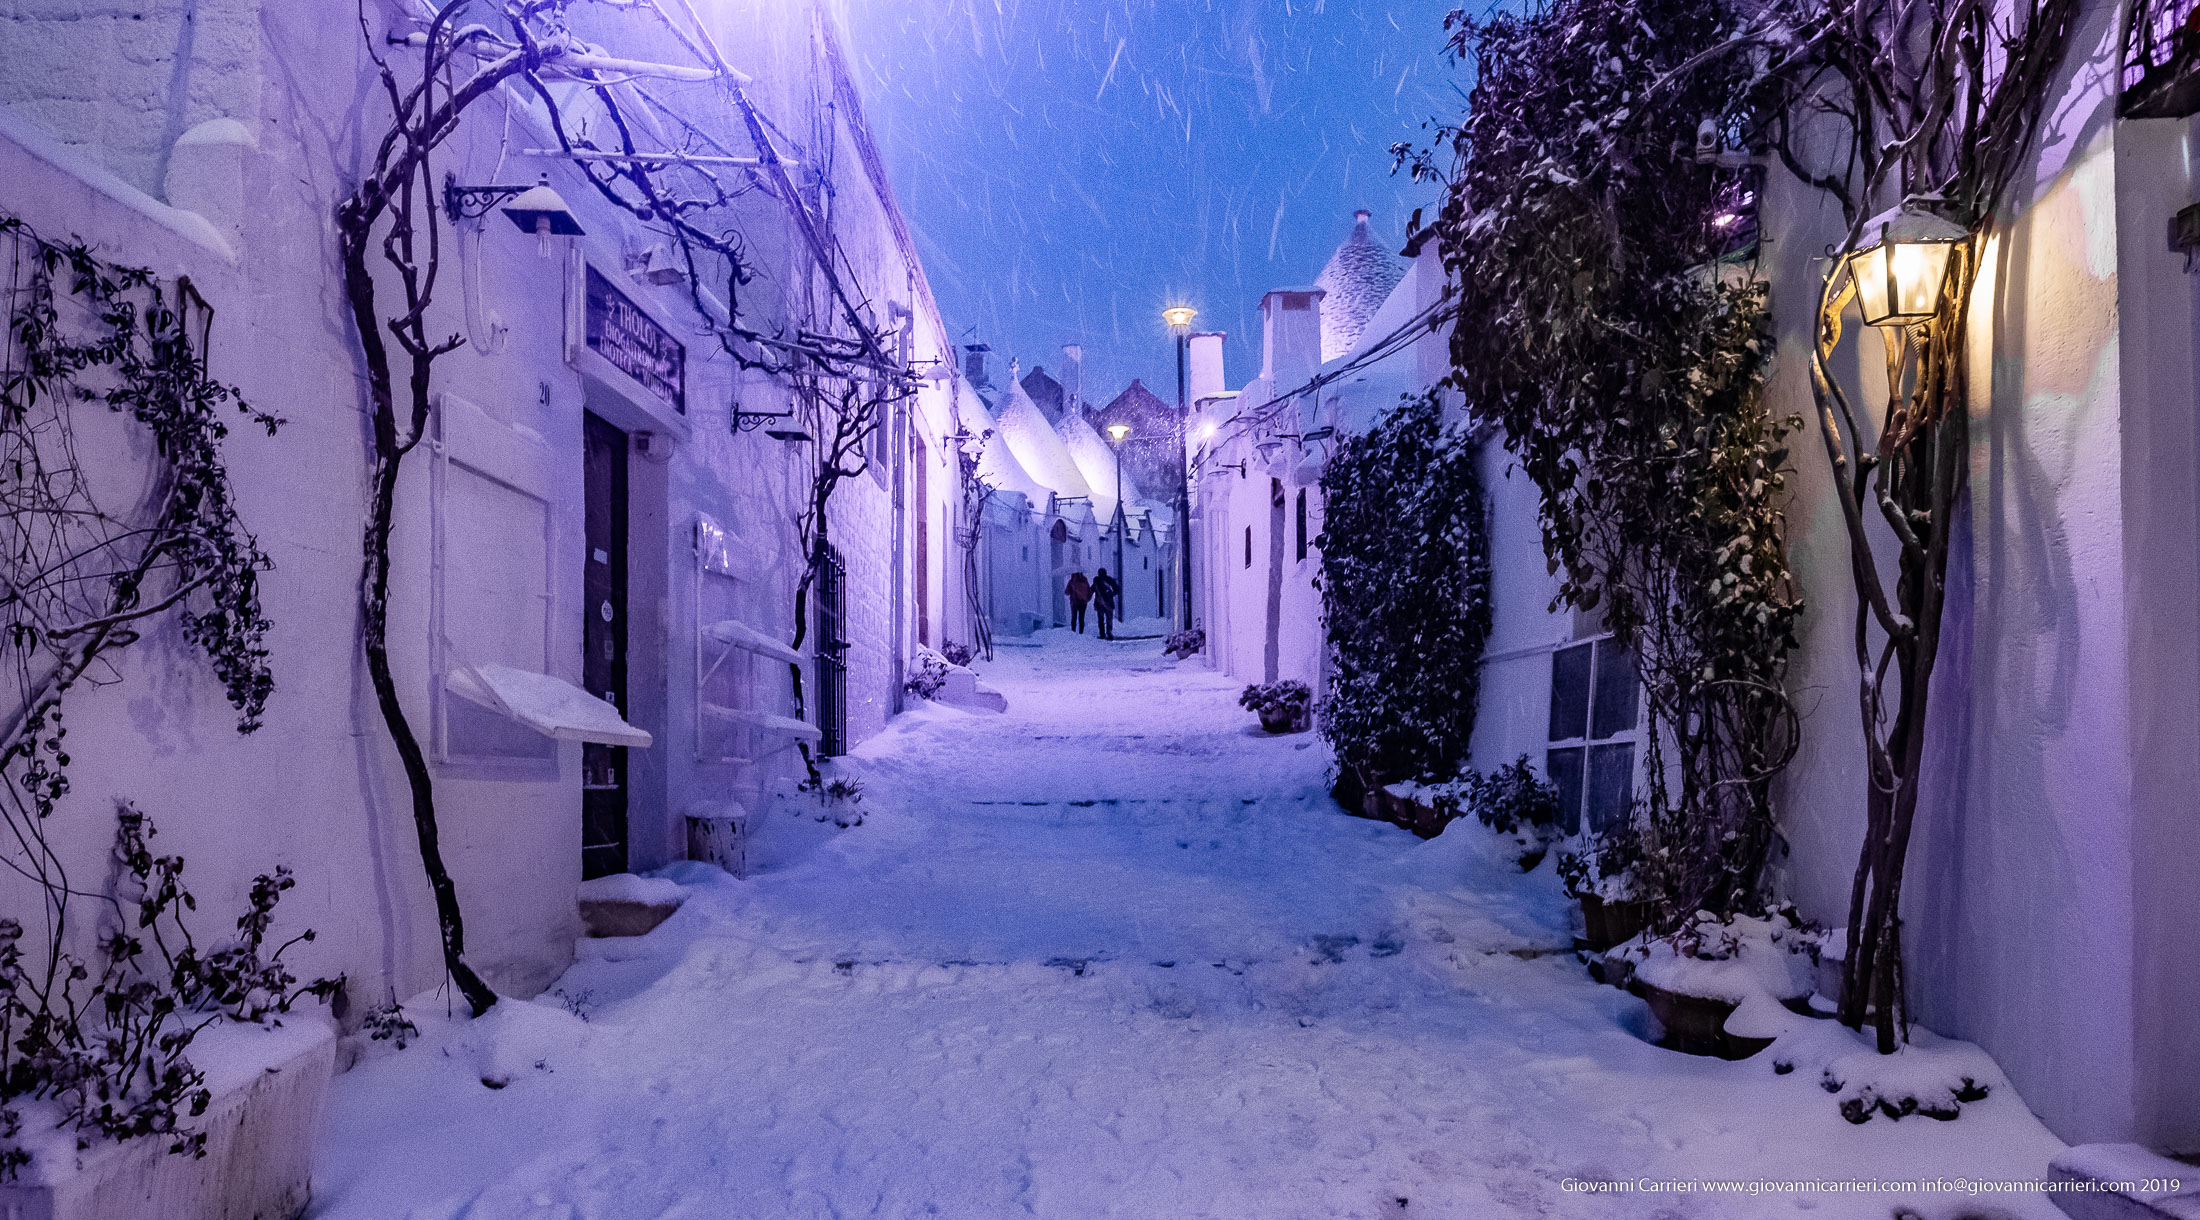 January the 4th, 2019 walking through the historic center of Alberobello